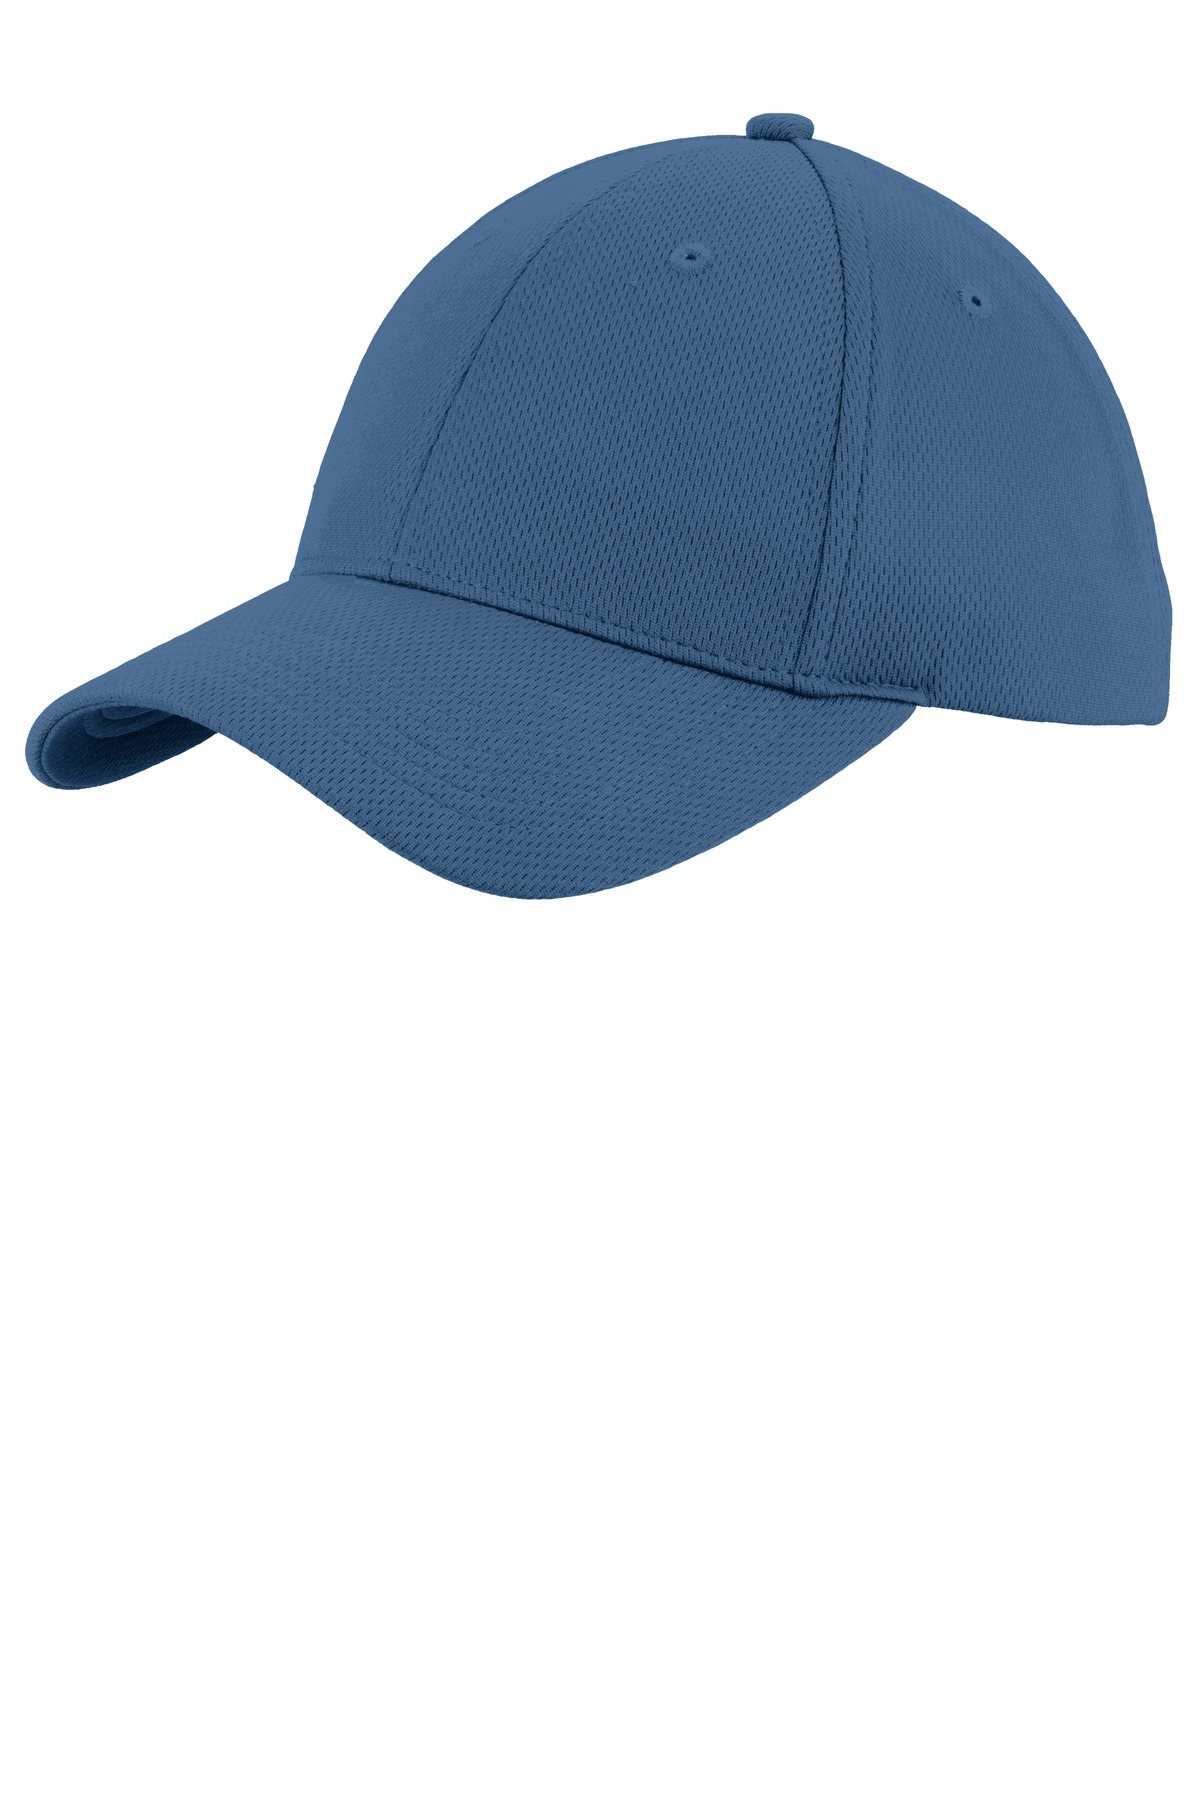 Sport-Tek ®  PosiCharge ®  RacerMesh ®  Cap. STC26 - Dawn Blue